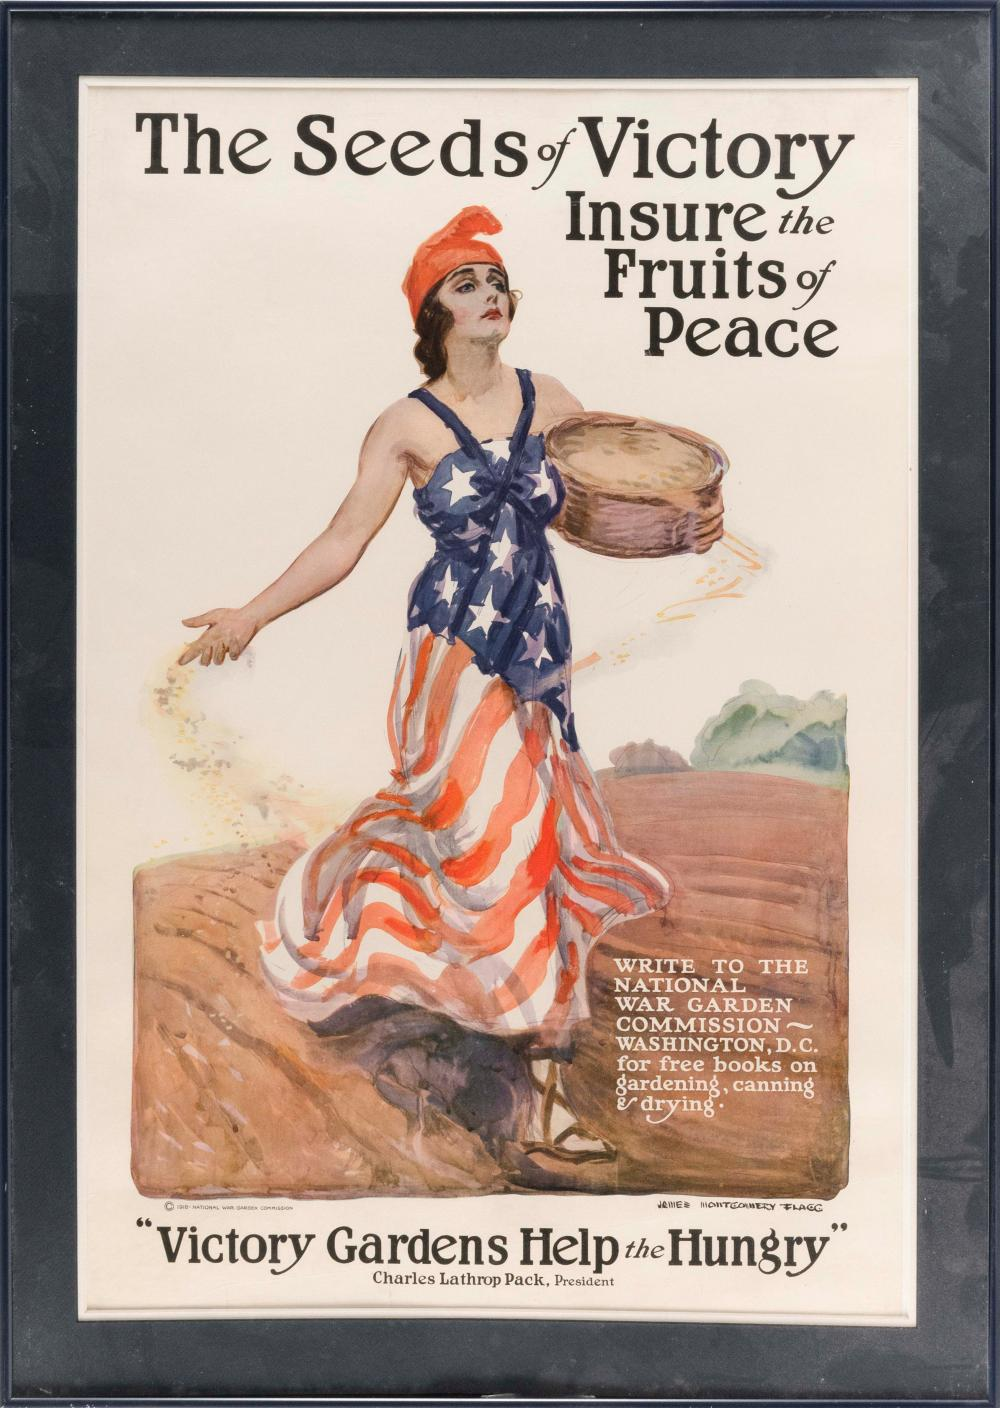 """""""THE SEEDS OF VICTORY INSURE THE FRUITS OF PEACE"""" WORLD WAR I POSTER By James Montgomery Flagg for the National War Garden Commissio..."""